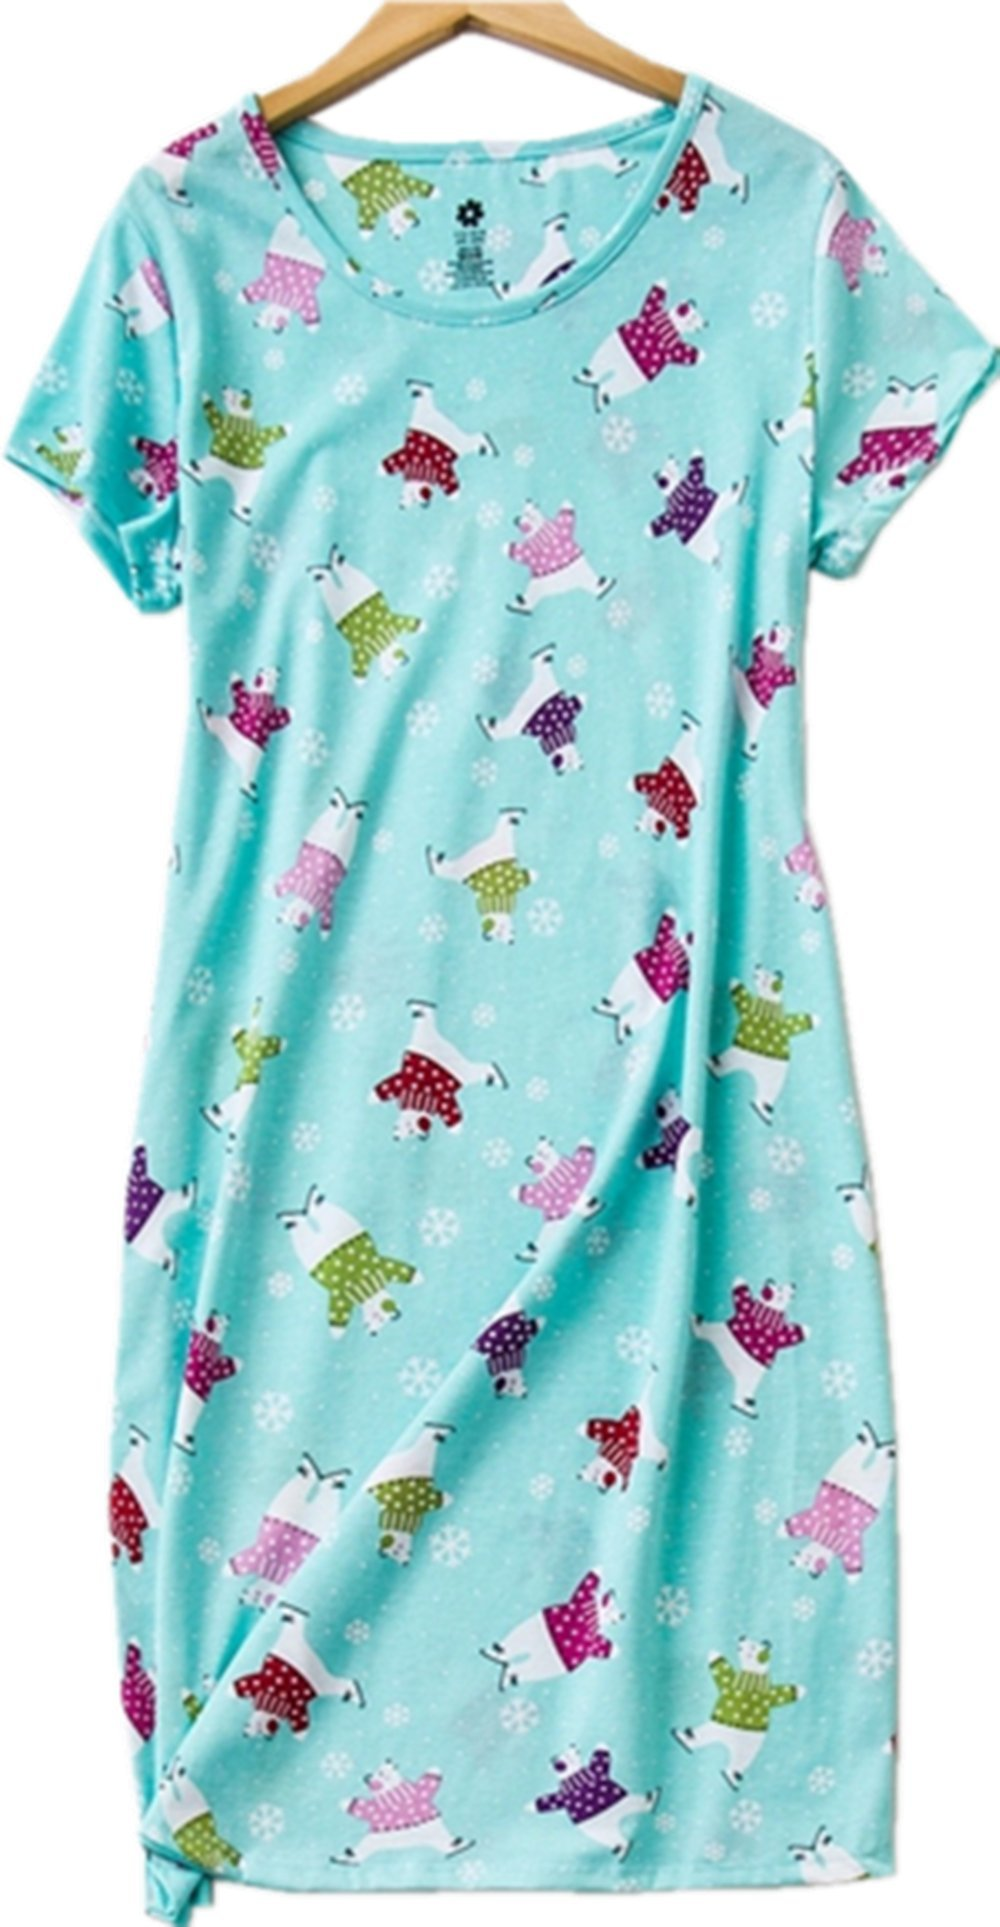 Amoy-Baby Women's Cotton Blend Green Floral Nightgown Casual Nights XTSY001-Color Bear-2XL